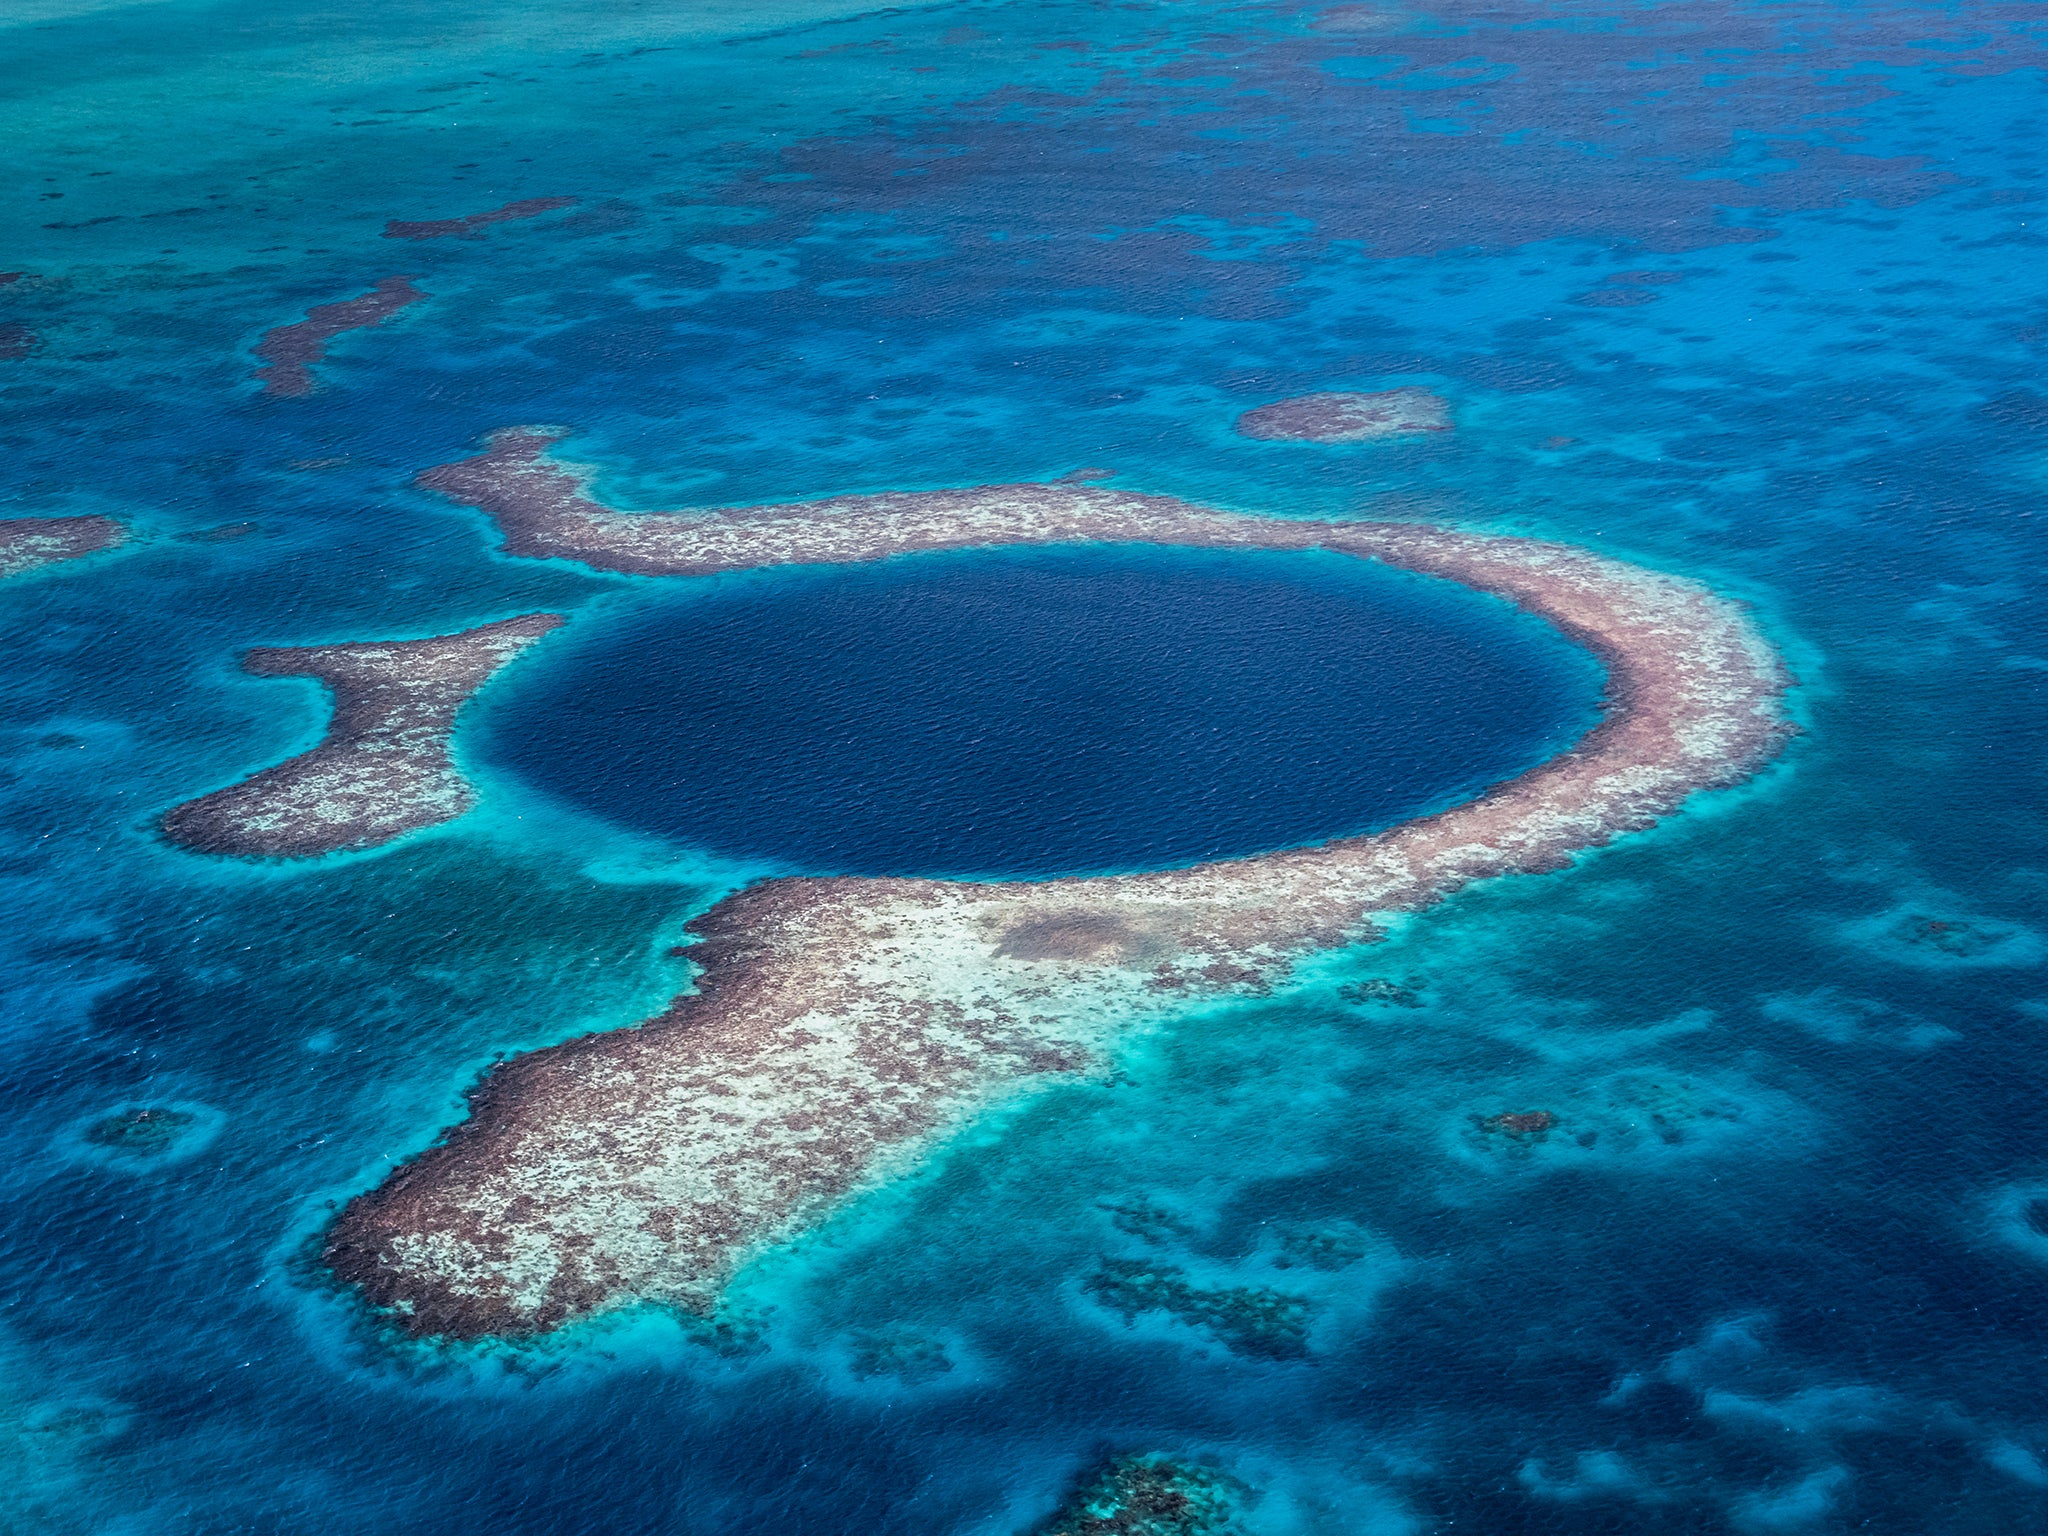 Belize Barrier Reef: Unesco removes largest coral reef system in Northern Hemisphere from endangered list